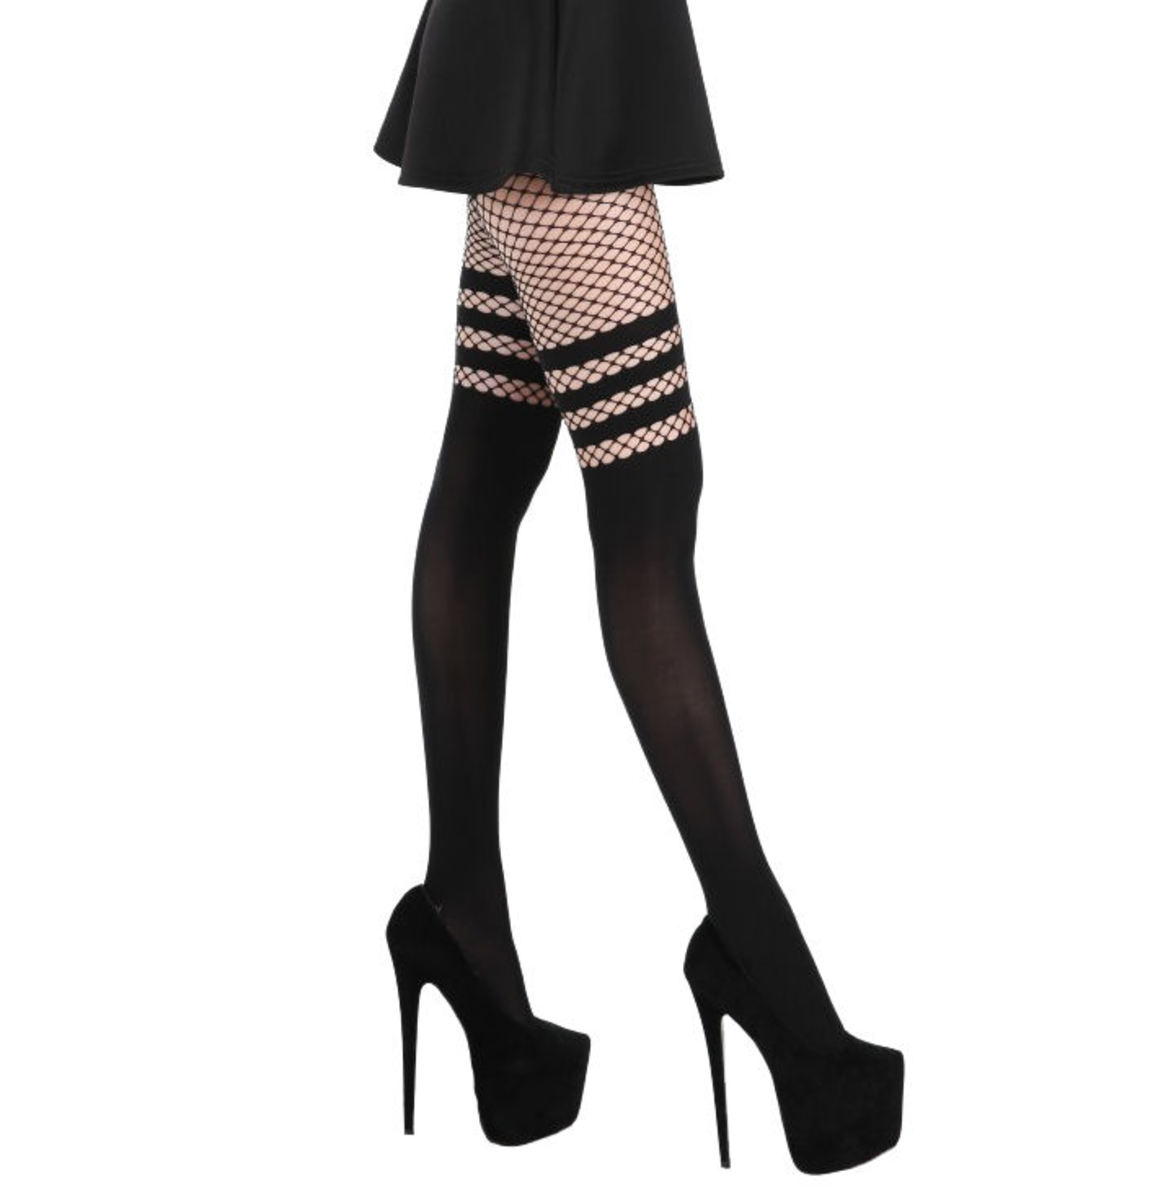 punčocháče dámské PAMELA MANN - Fishnet Over the Knee - Black Tall - PM1041